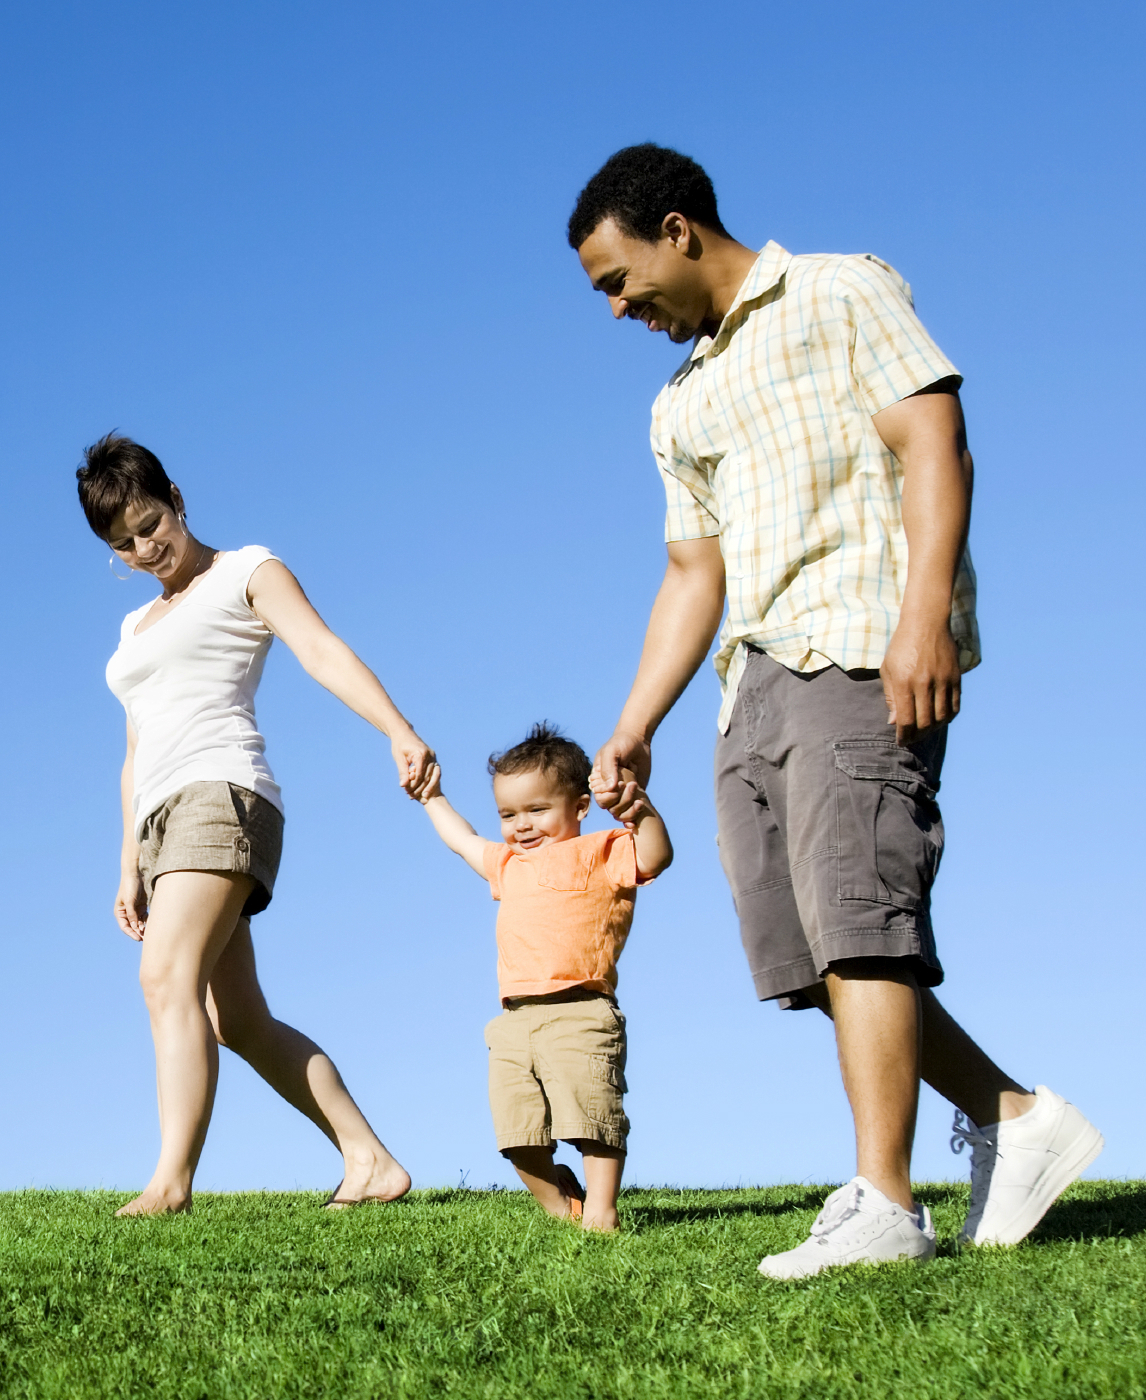 Families Enjoy The Free Insurance Quote - MRMS-Inc.